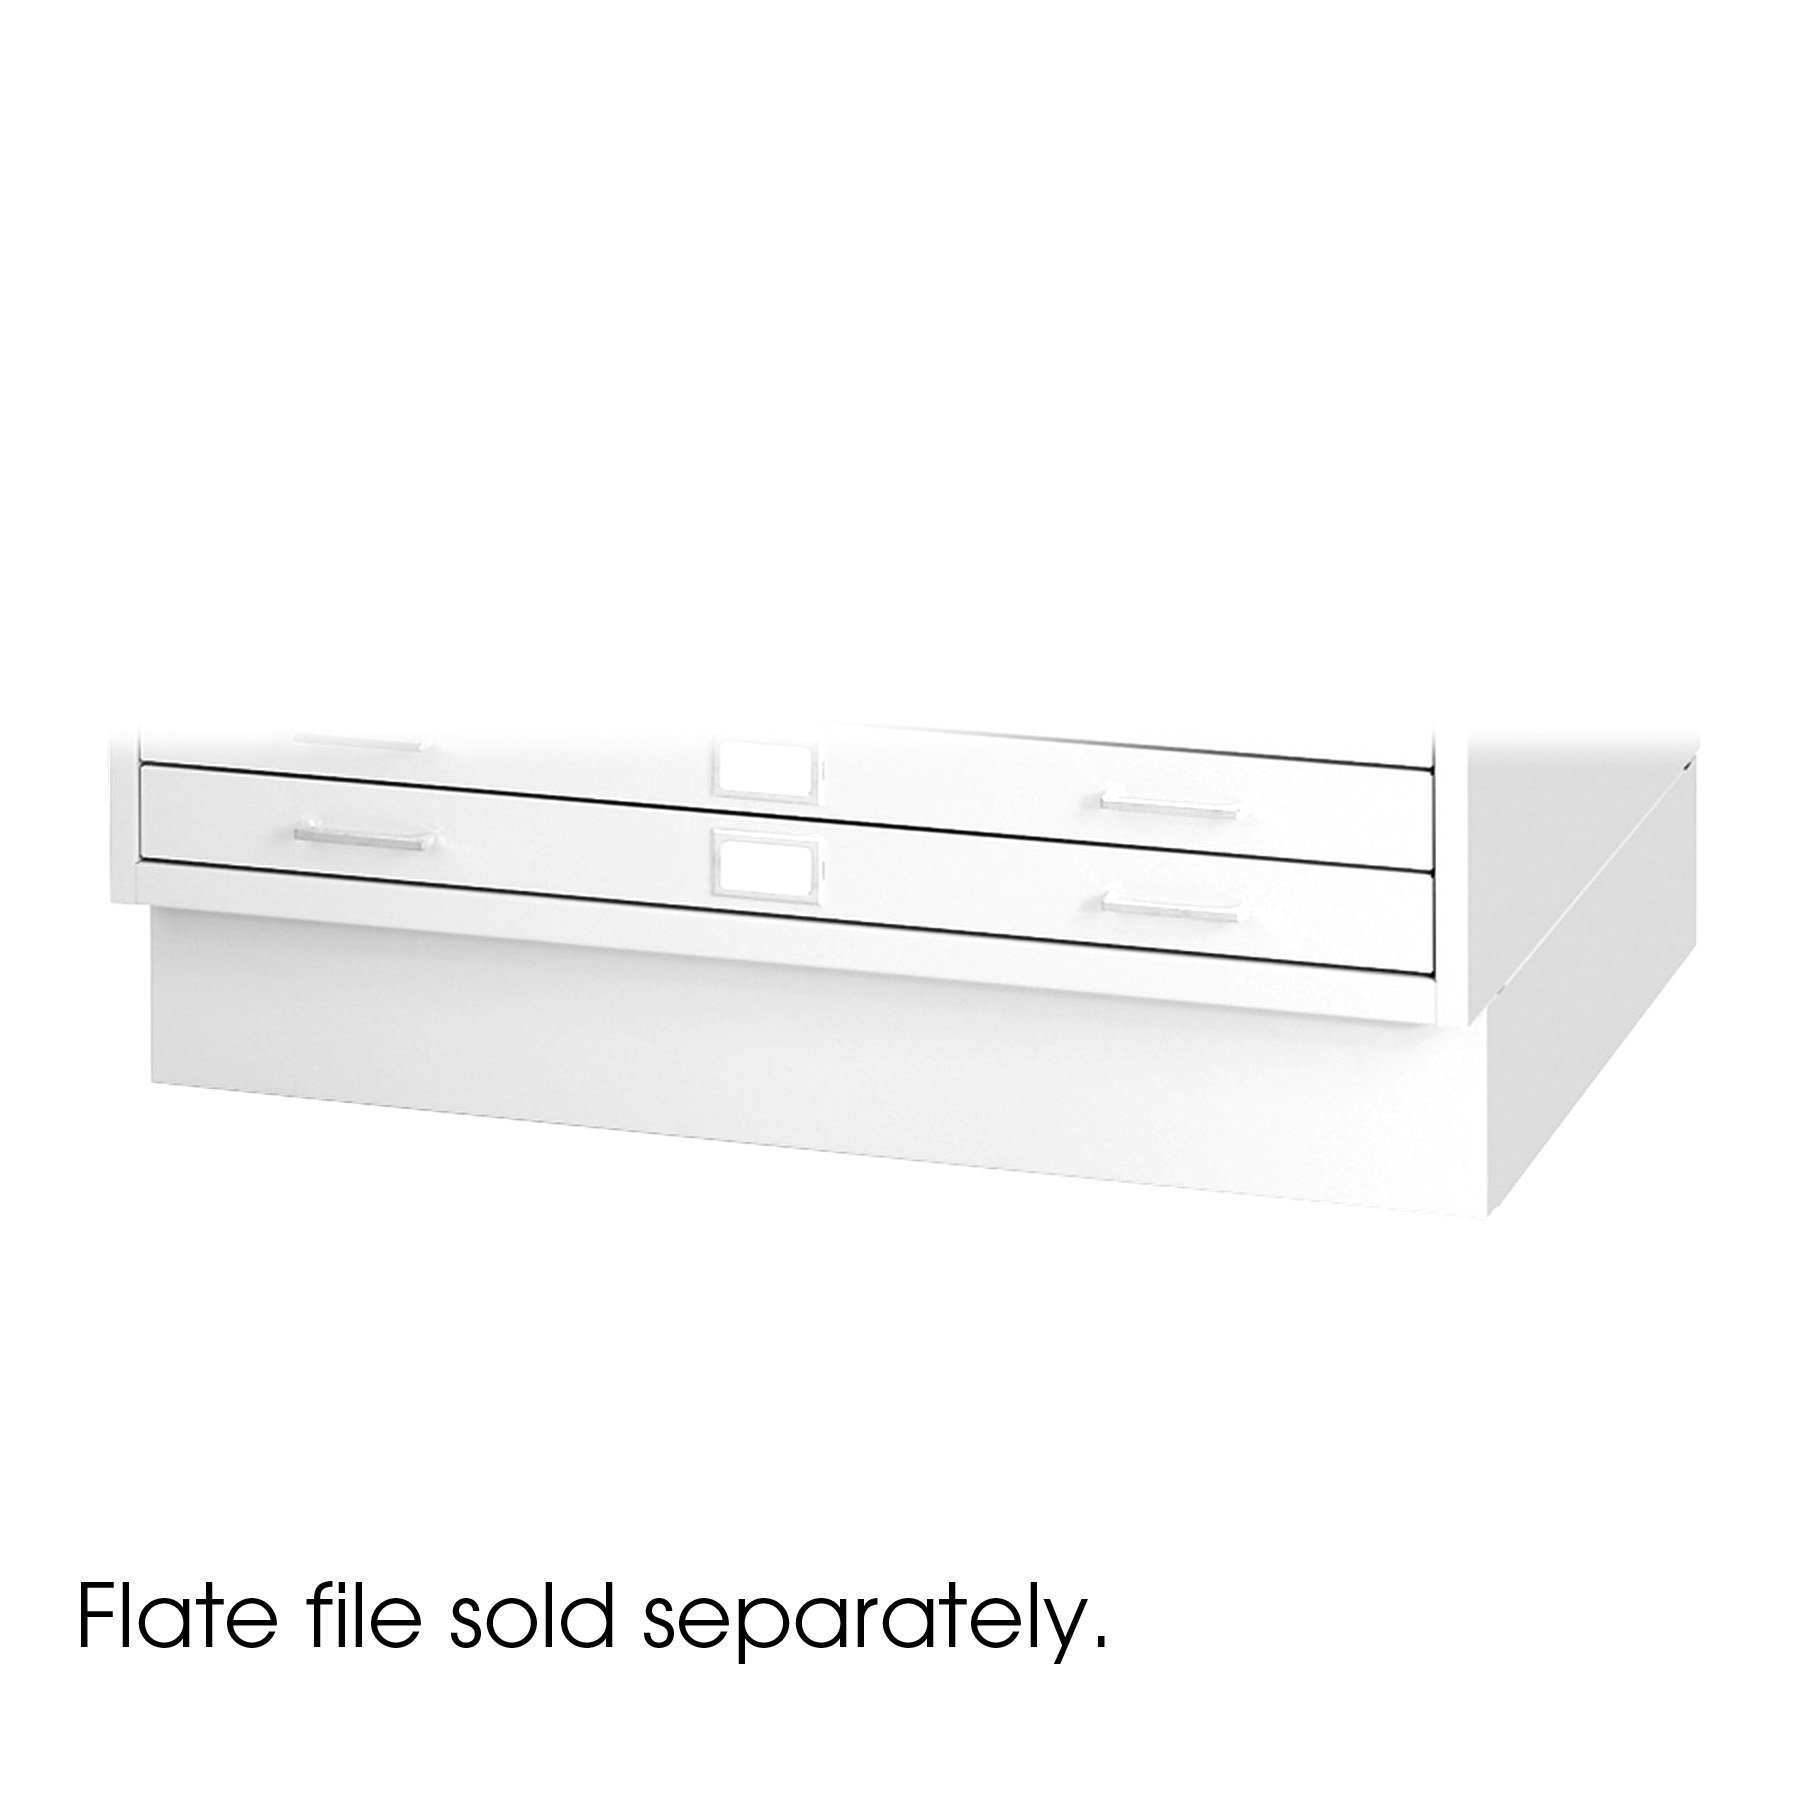 Safco Products 4999WHR Flat File Closed Base for 5-Drawer 4998WHR Flat File, sold separately, White